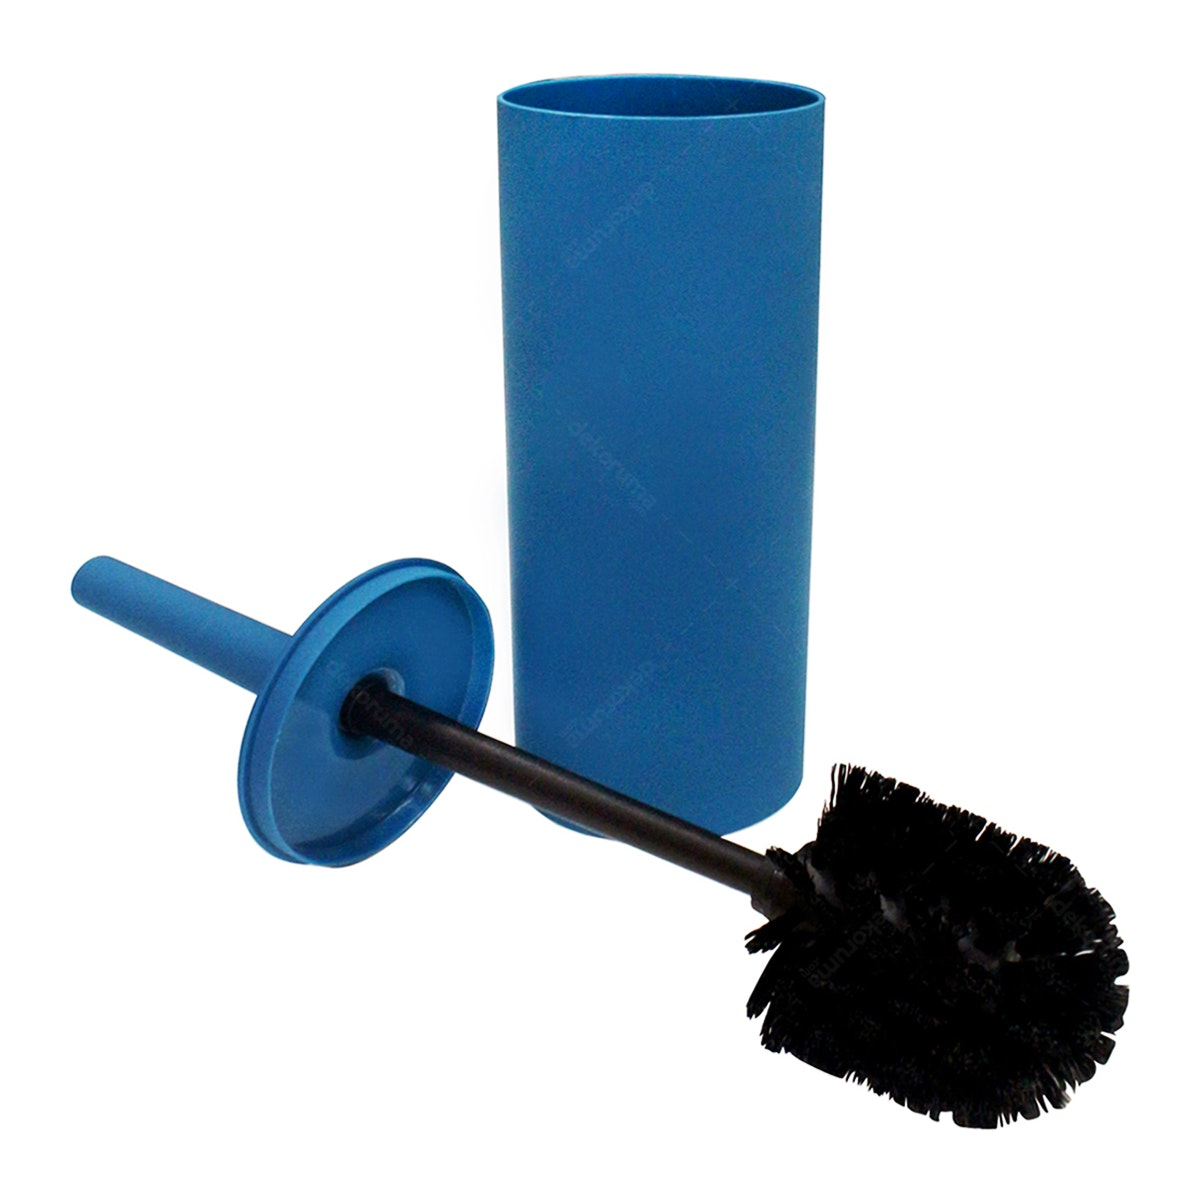 JYSK Toilet Brush Nynne Assorted Color